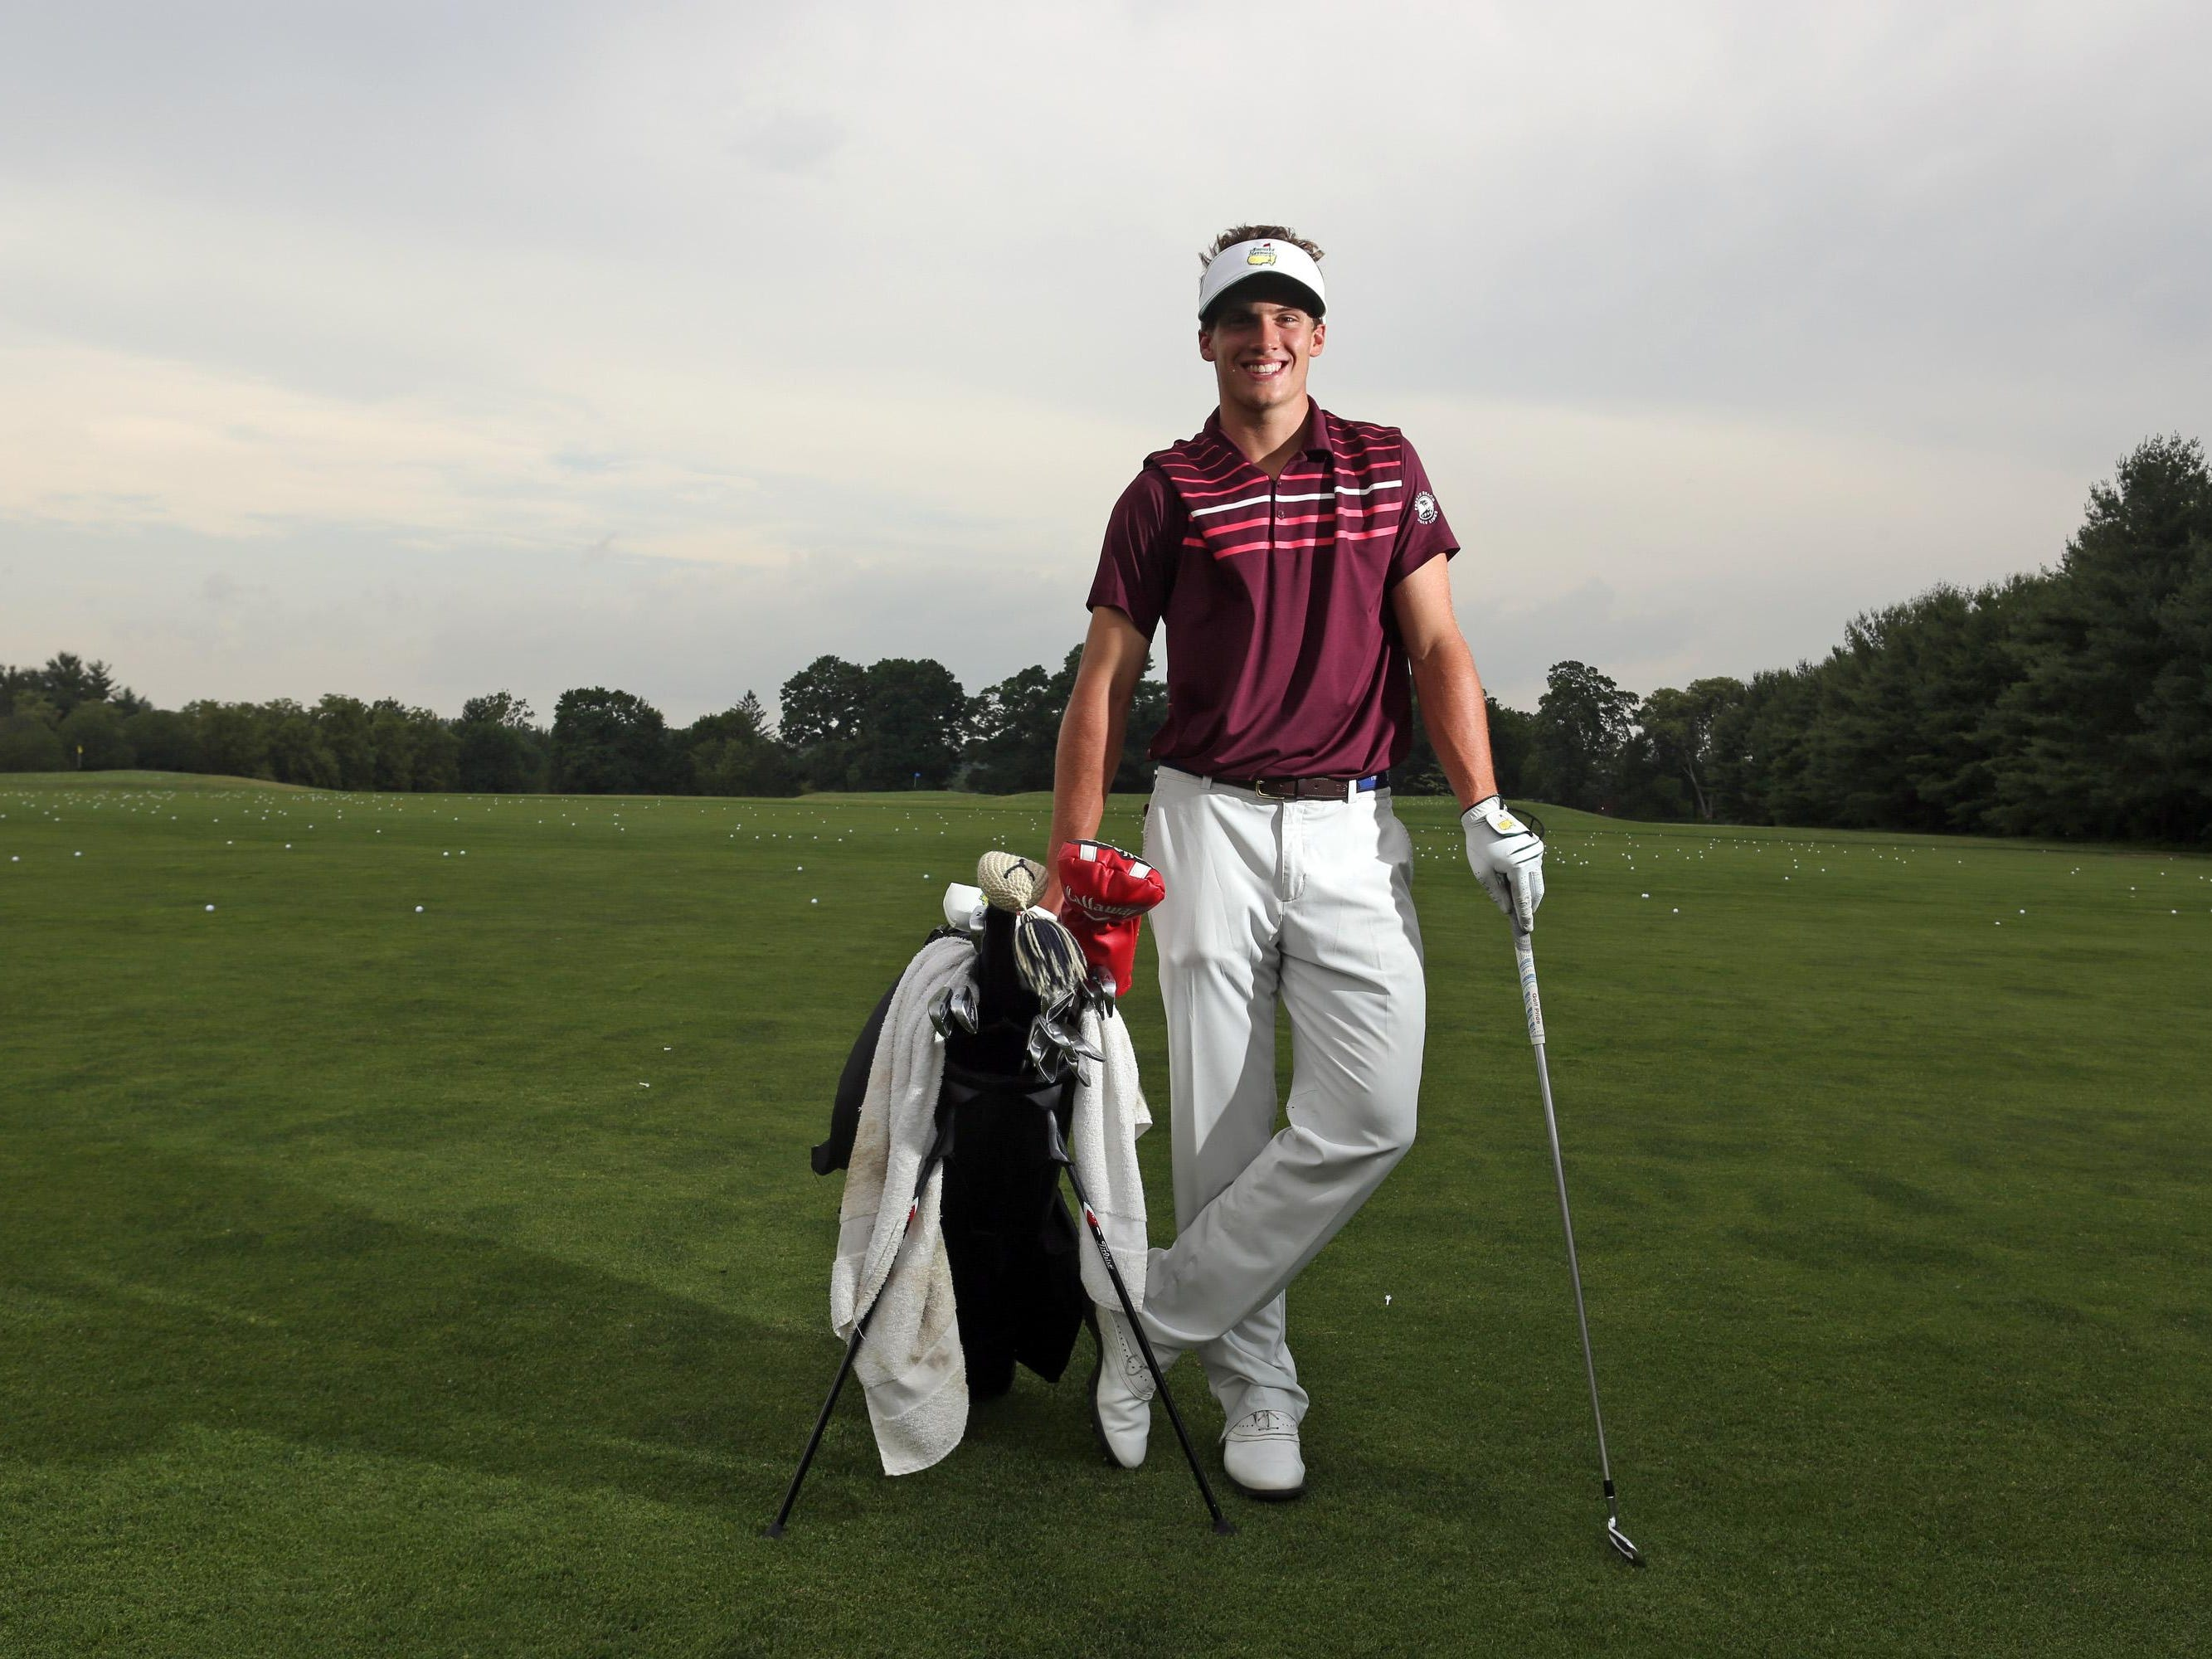 James Nicholas of Scarsdale High School is the Westchester/Putnam golfer of the year. He was photographed June 23, 2015 at Westchester Country Club.